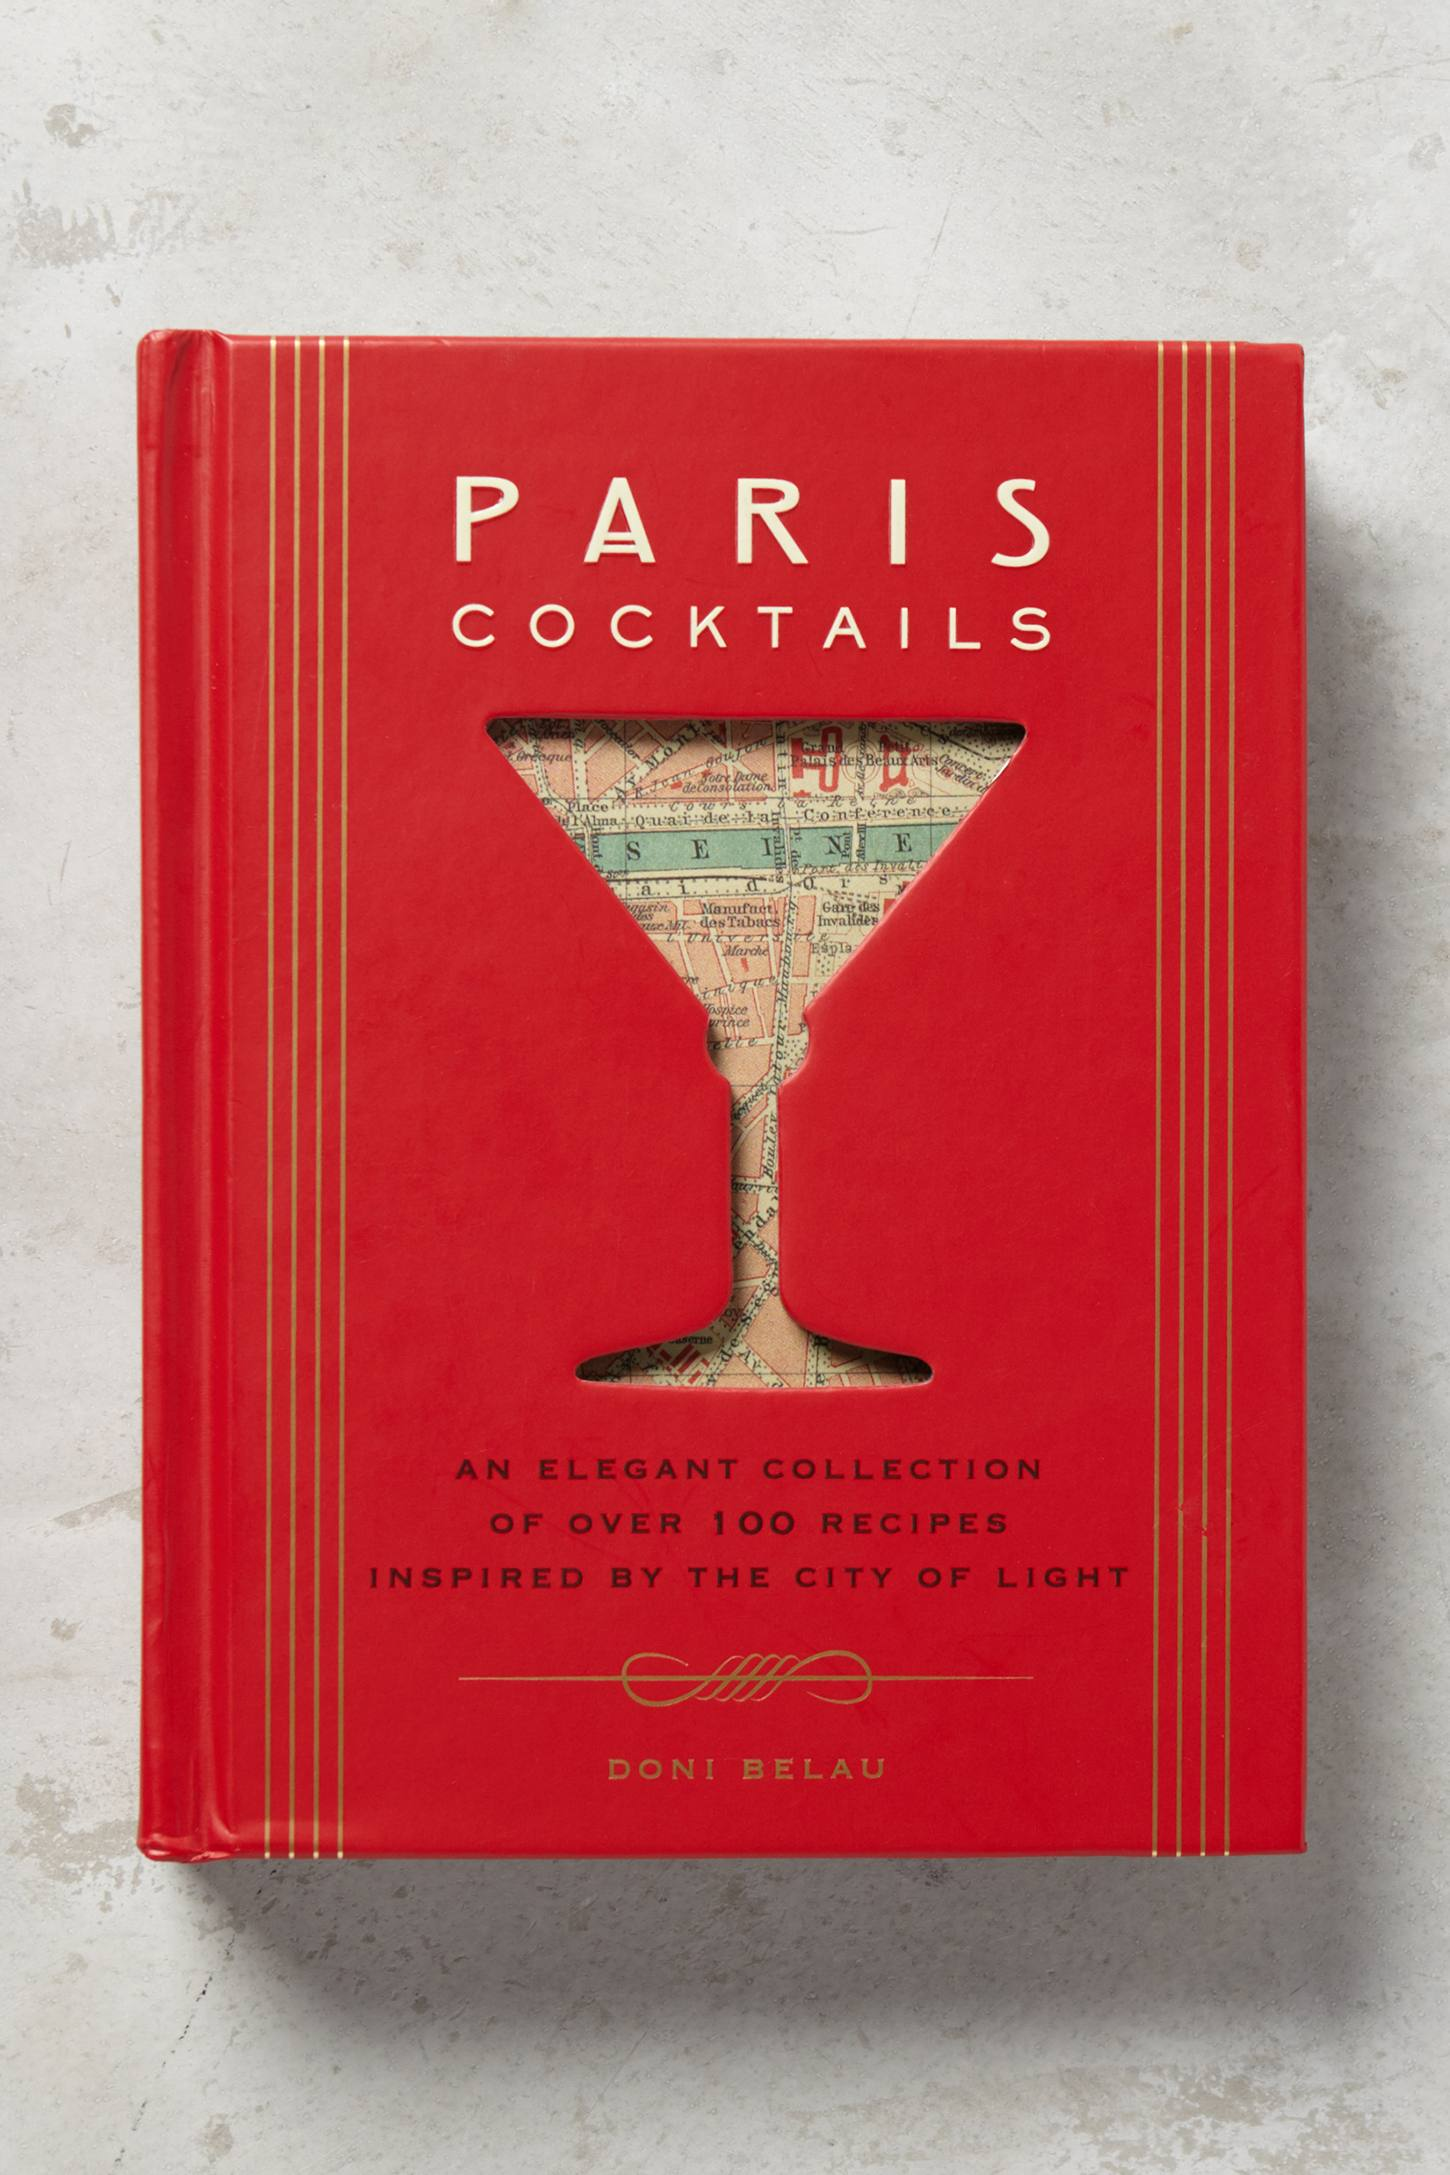 Paris Cocktails